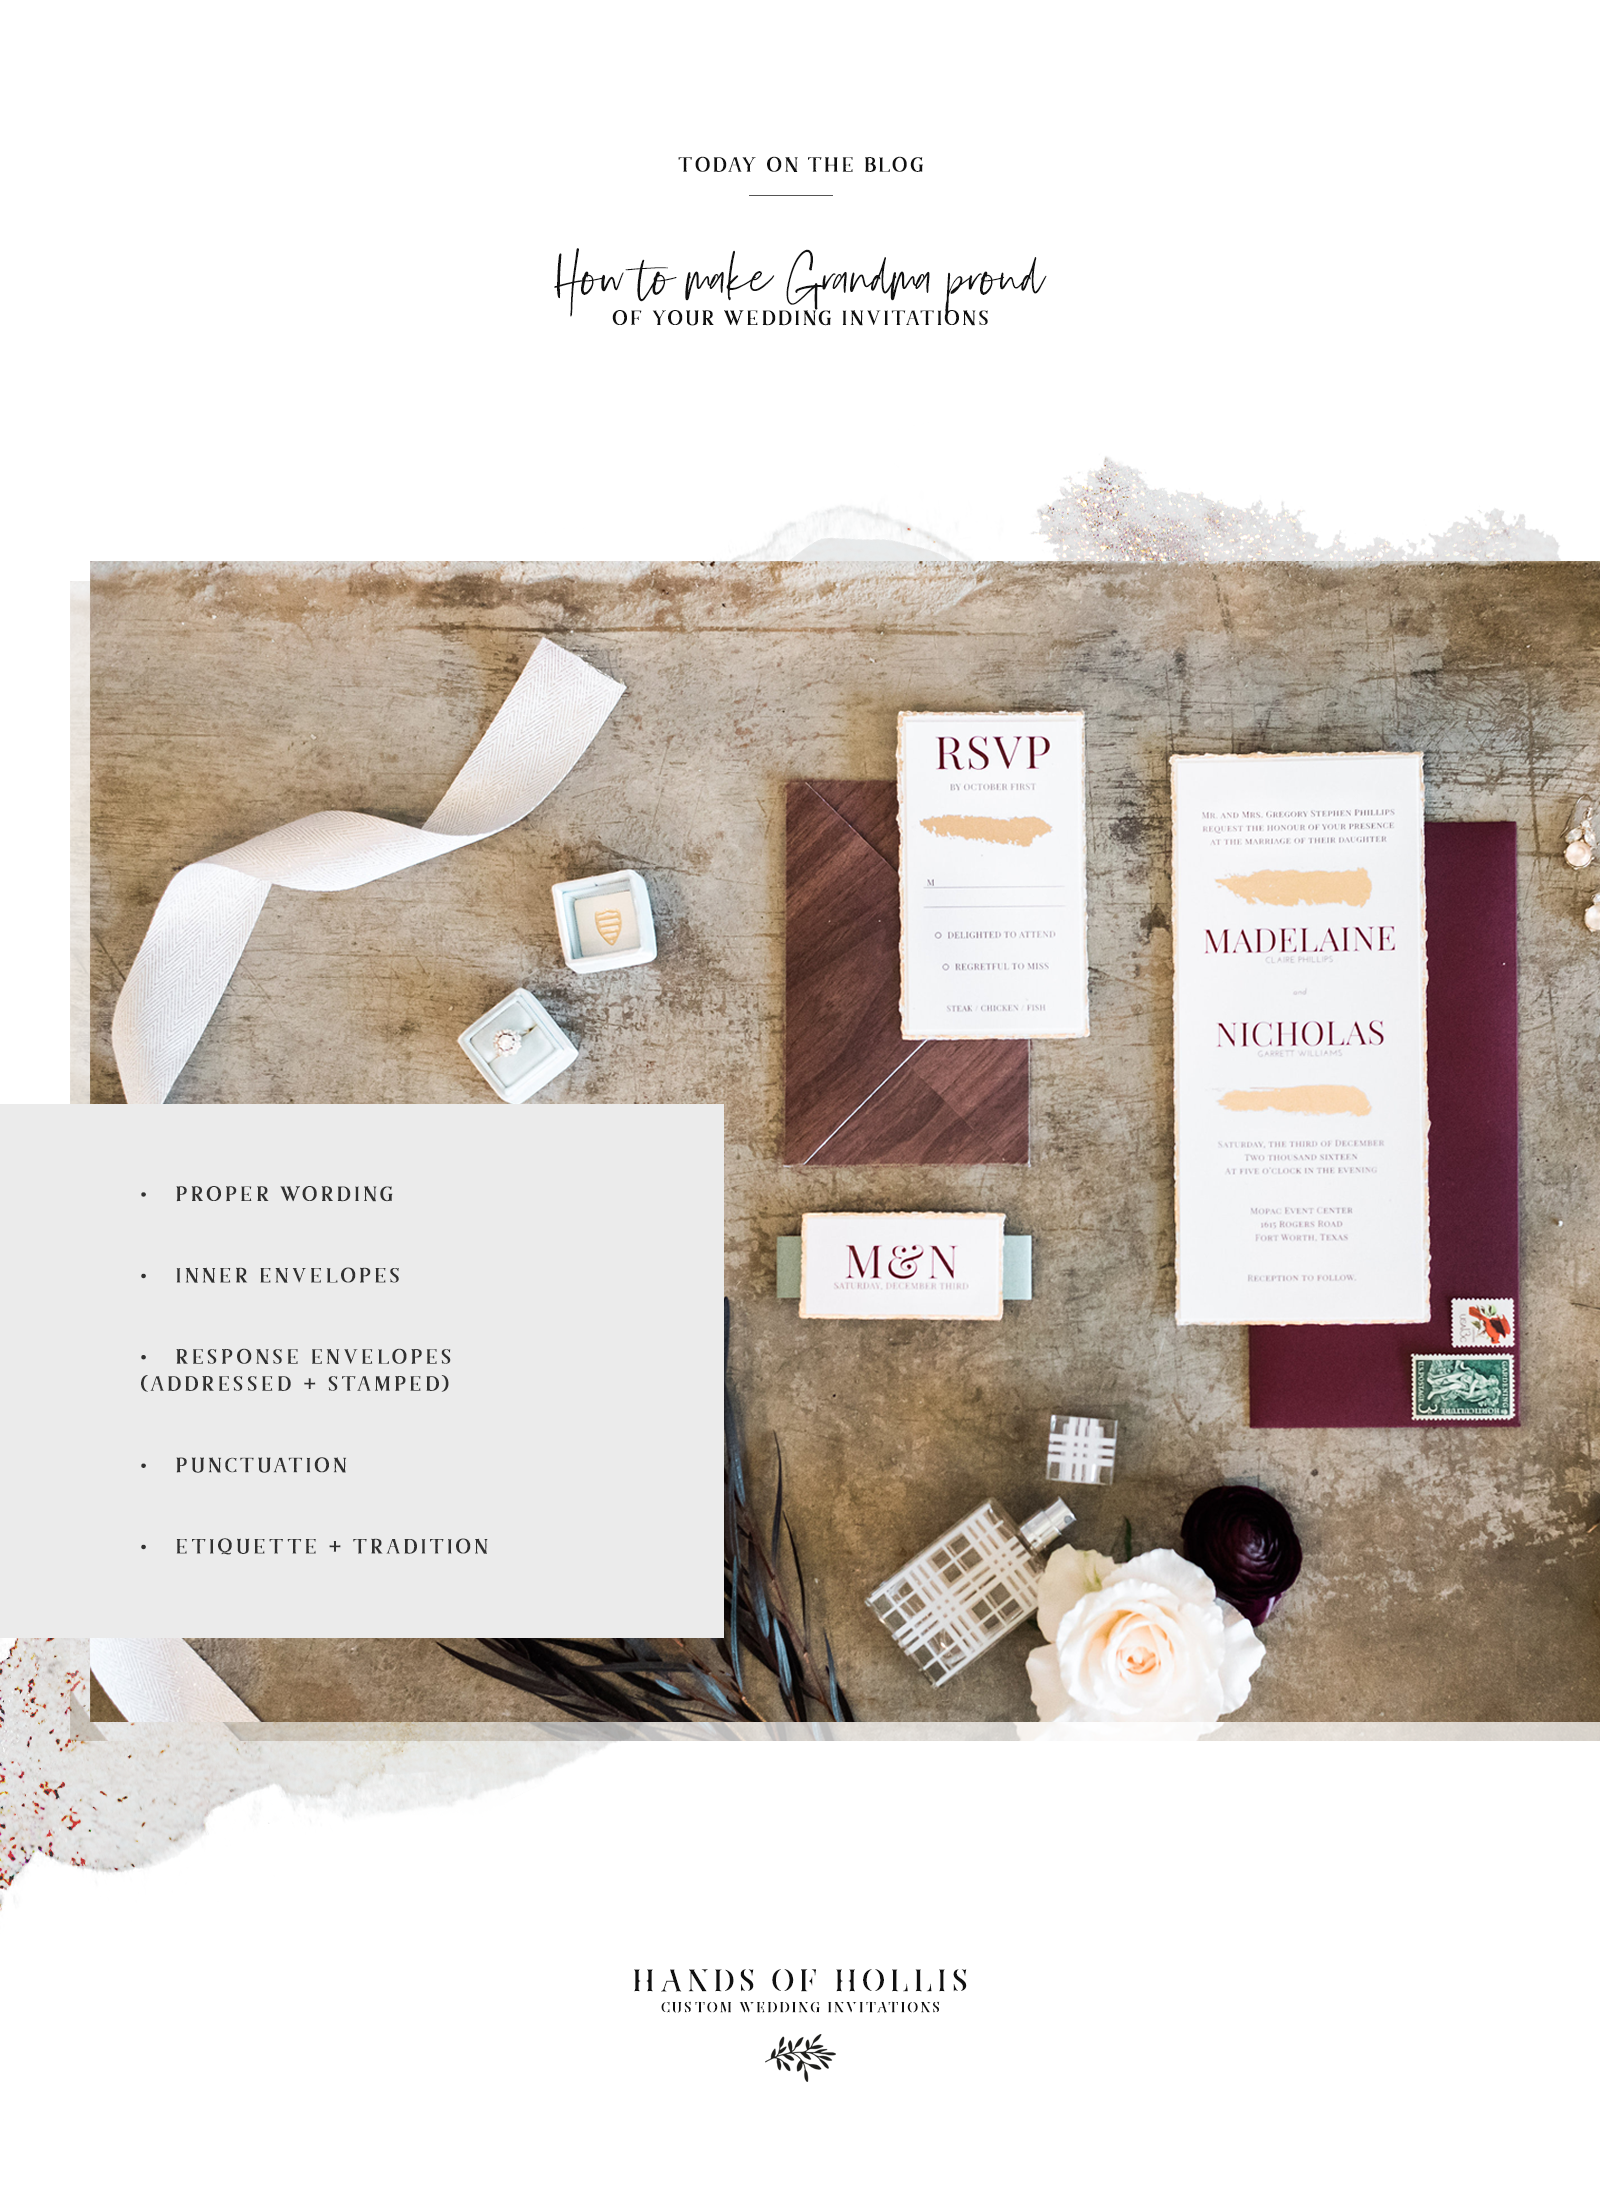 How to make Grandma proud of your wedding invitations with traditional etiquette from Hands of Hollis in Dallas, Texas